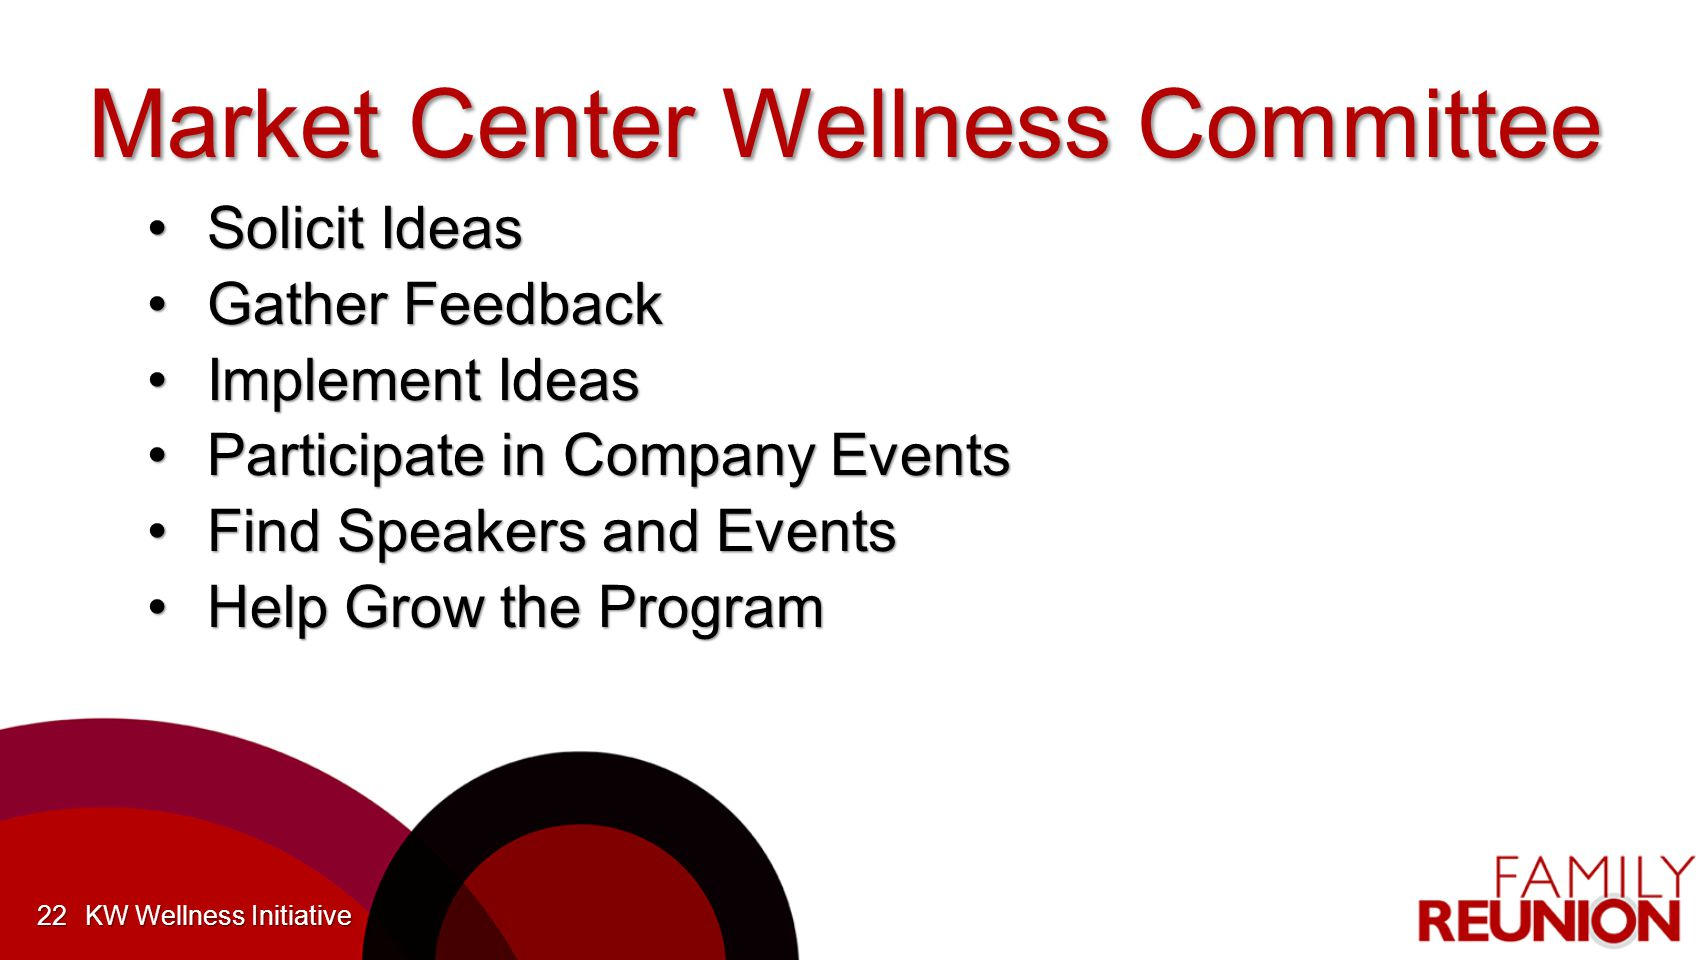 Market Center Wellness Committee Solicit IdeasSolicit Ideas Gather FeedbackGather Feedback Implement IdeasImplement Ideas Participate in Company EventsParticipate in Company Events Find Speakers and EventsFind Speakers and Events Help Grow the ProgramHelp Grow the Program KW Wellness Initiative22